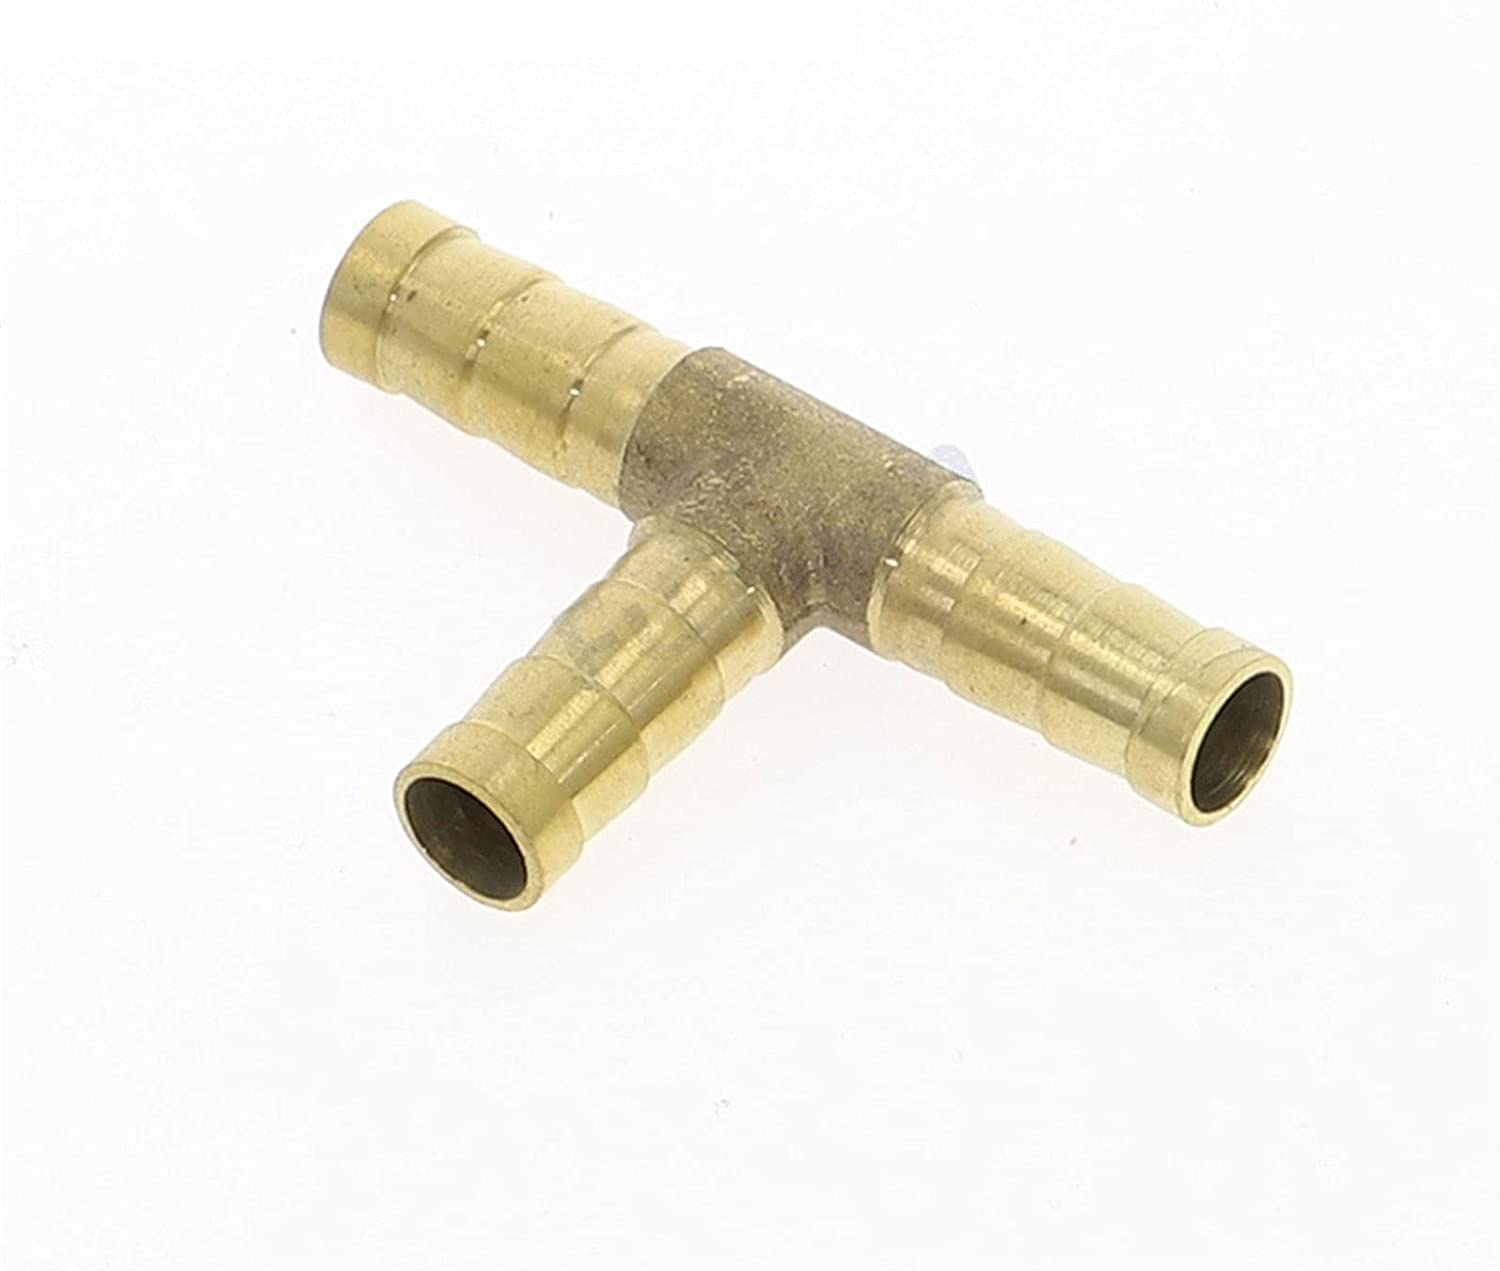 Zkenyao-Brass Connector Brass Barb Fitting Barbed 3 Way New Shipping Free Industry No. 1 Hose Tee